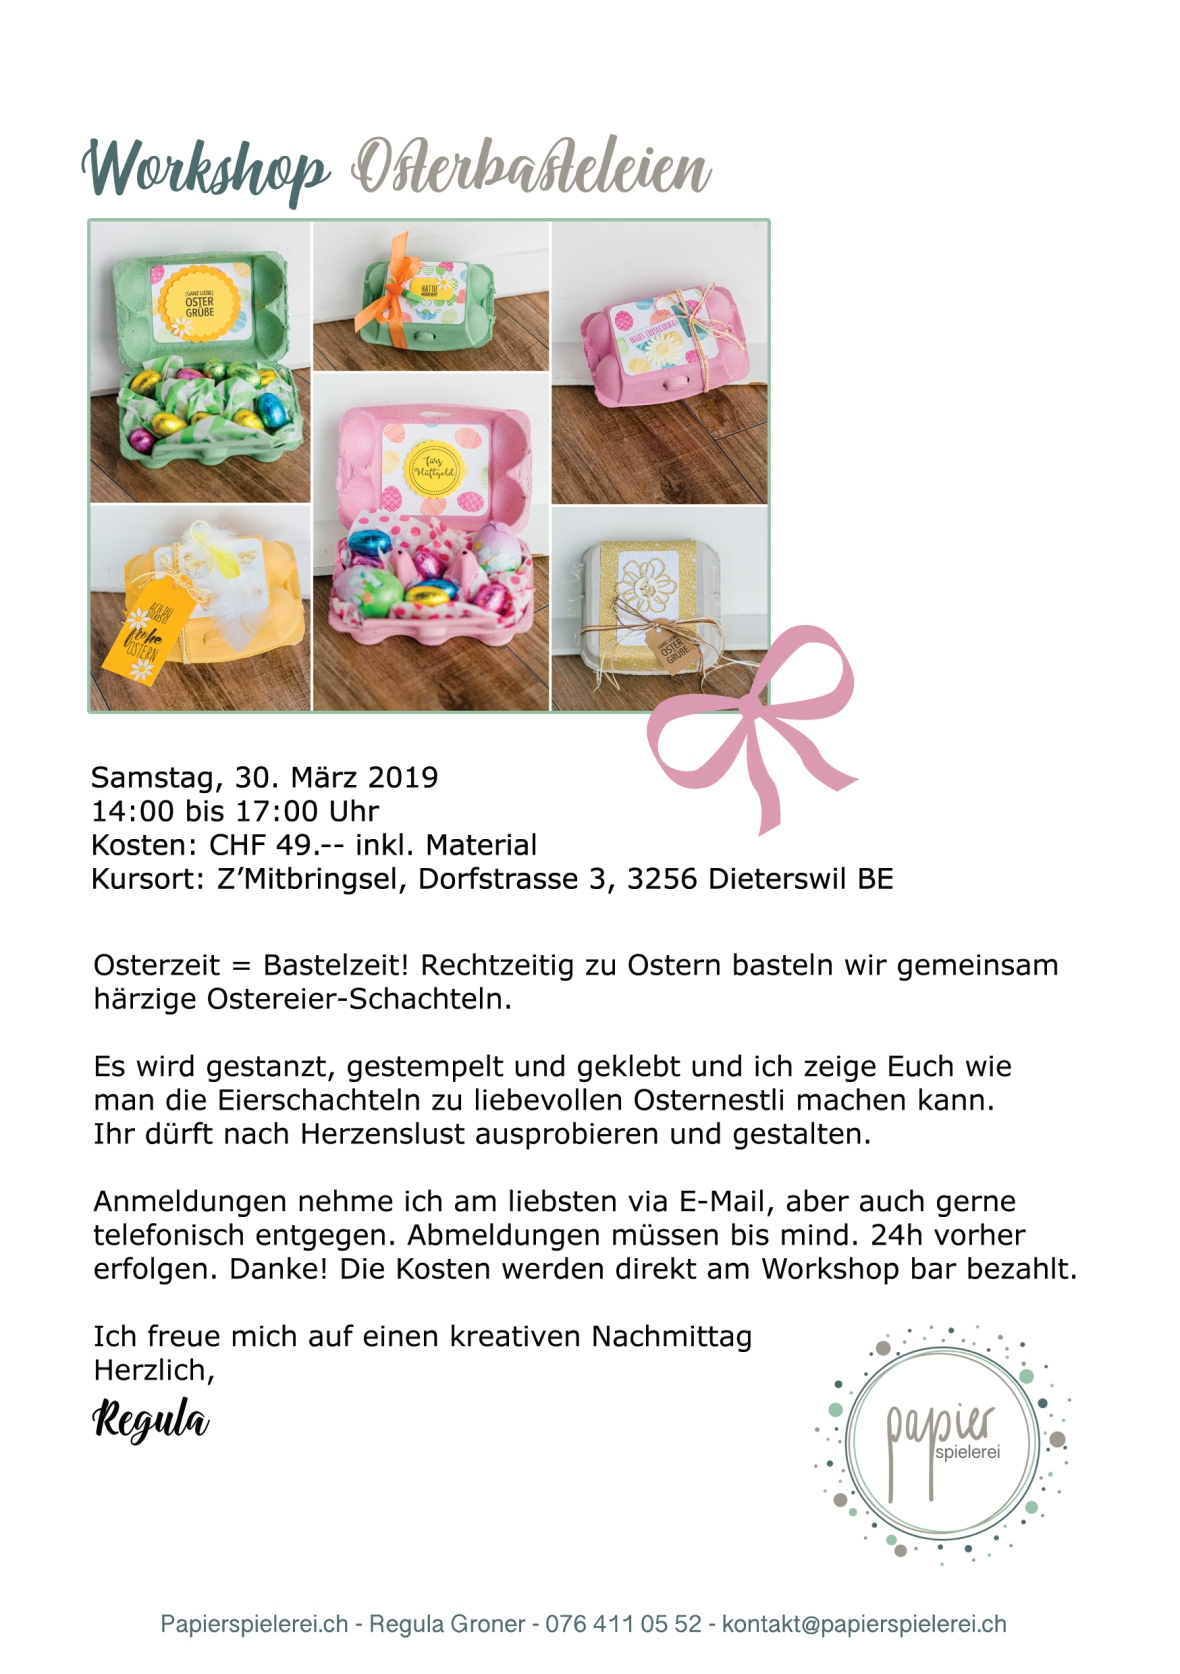 Programm Workshop